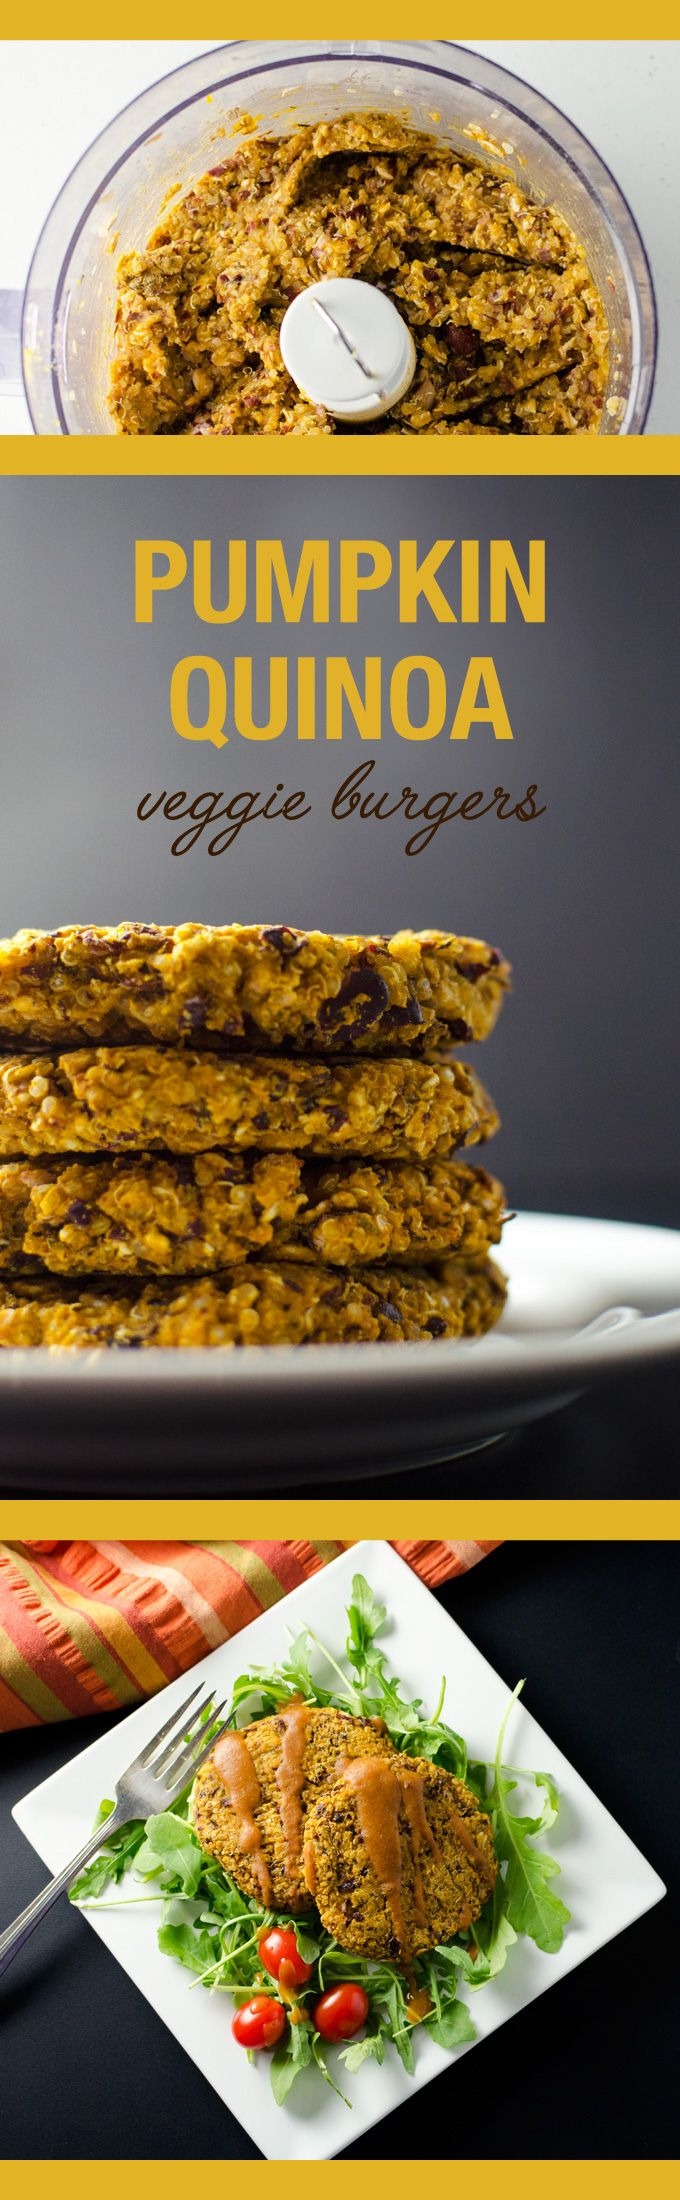 Pumpkin Quinoa Veggie Burgers - thyme and sage provide a nice accent to pumpkin and BBQ flavors in this quick and easy vegan gluten-free recipe | VeggiePrimer.com